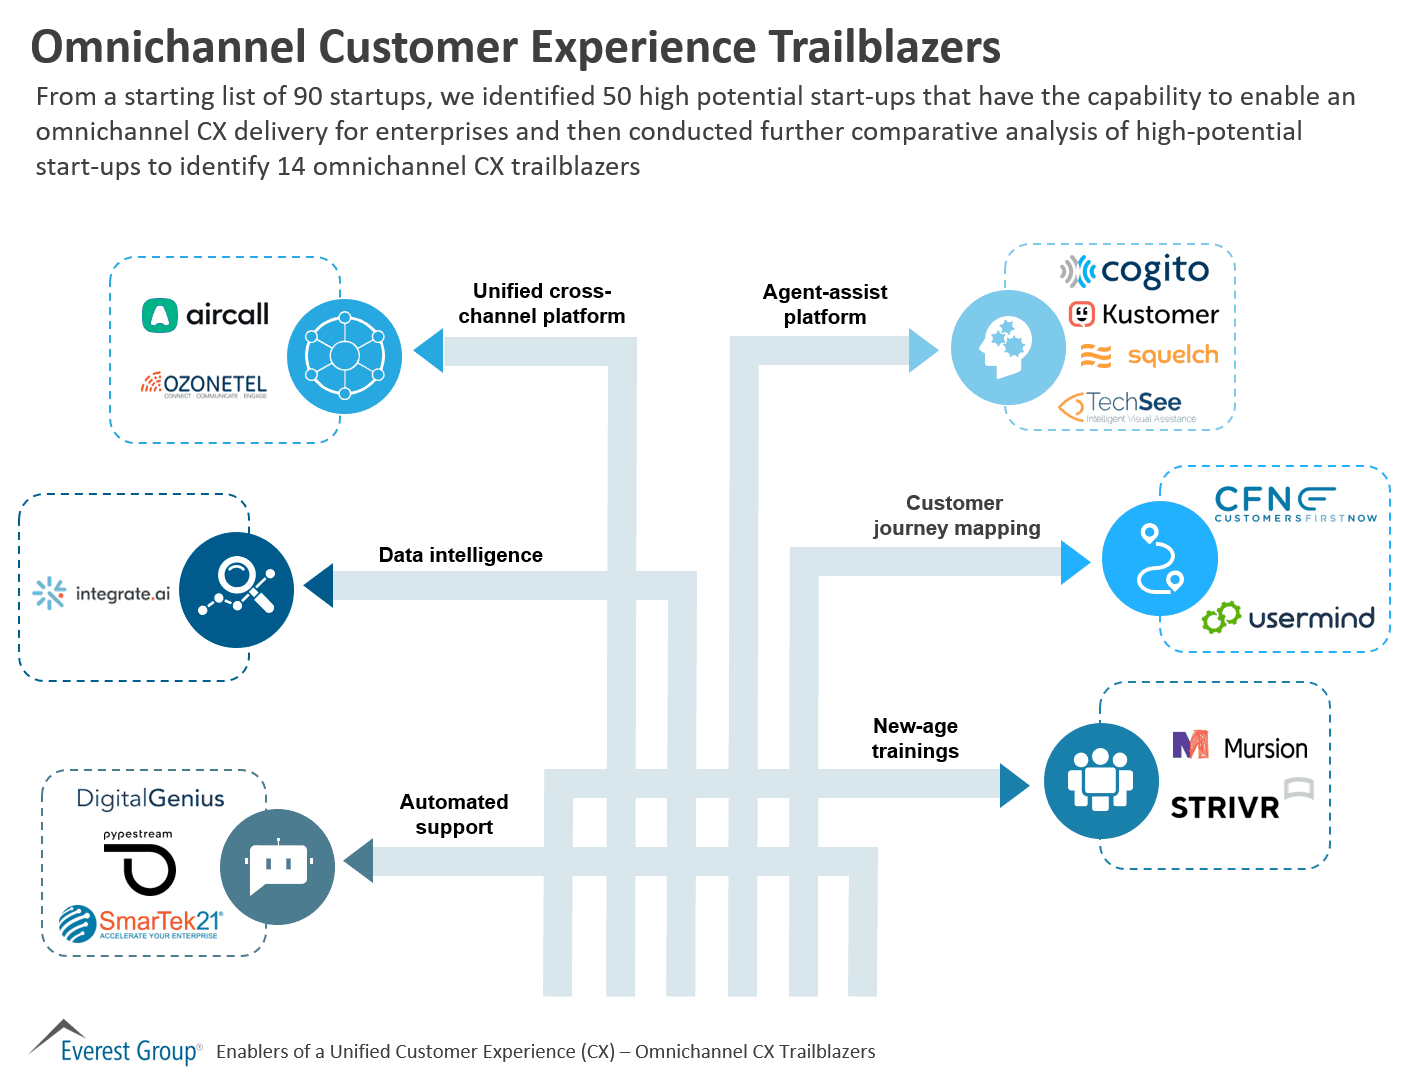 Omnichannel Customer Experience Trailblazers